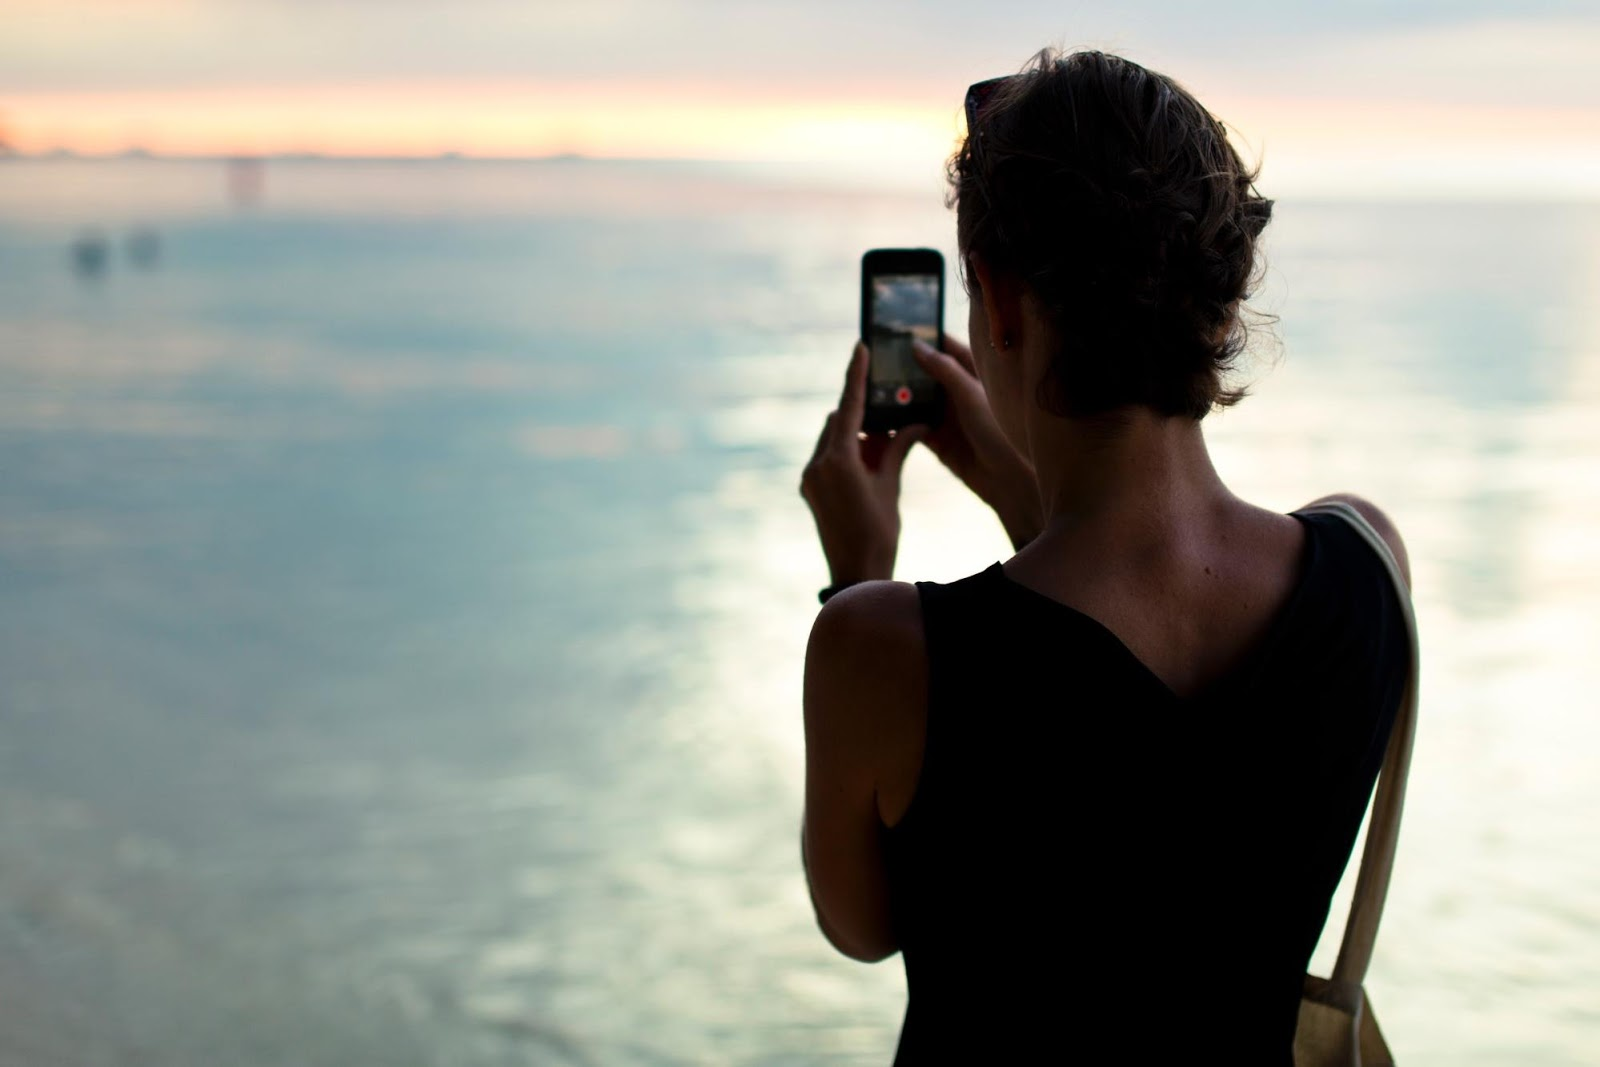 The Ultimate Guide to Taking Picture-Perfect Instagram Photos